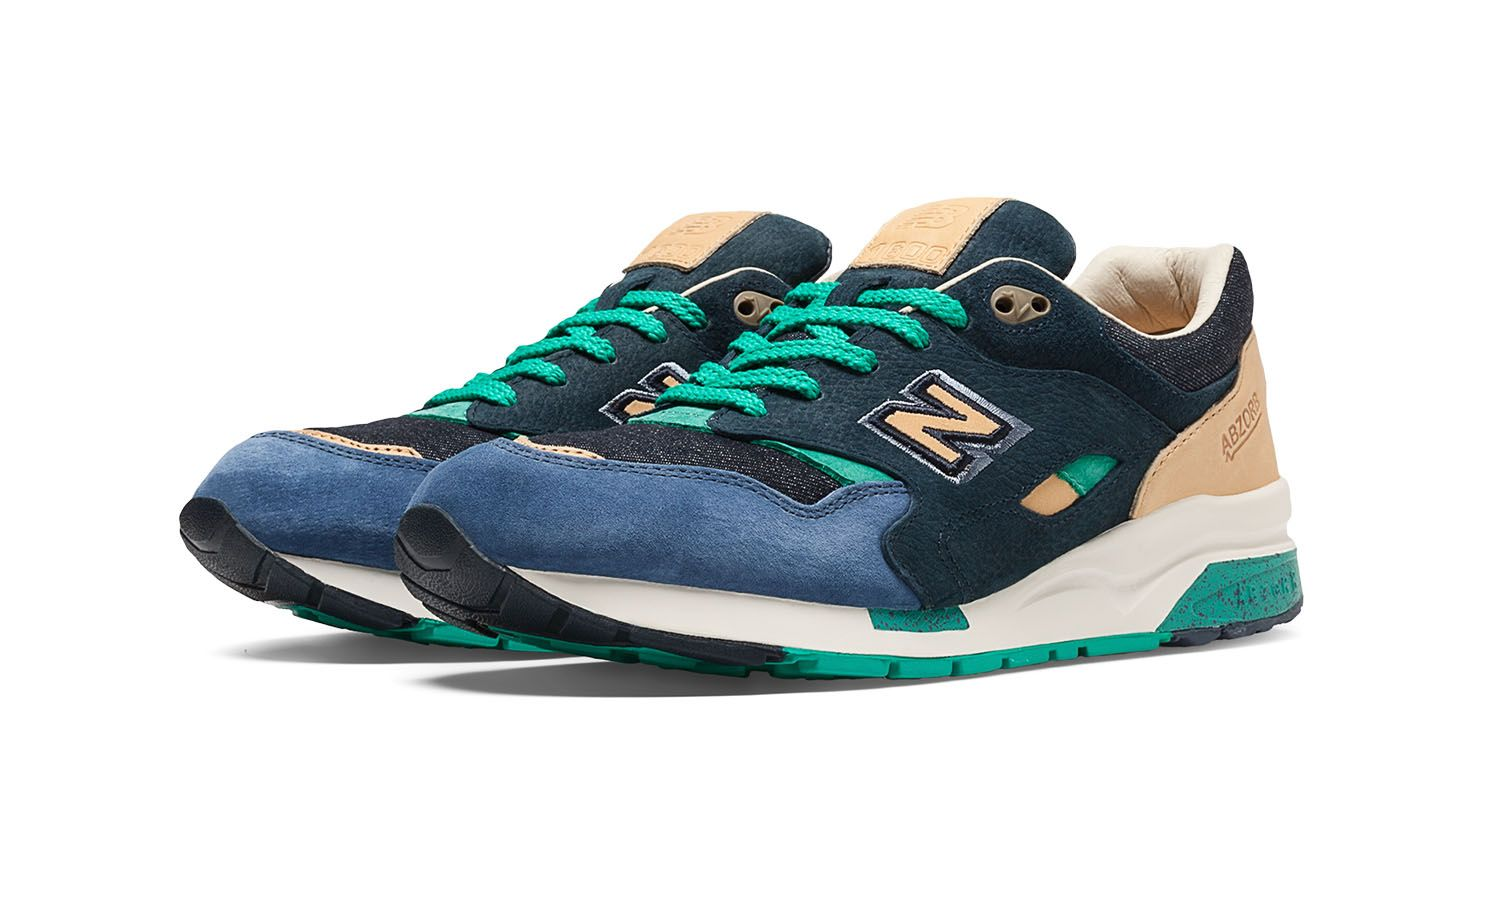 New Balance x Social Status CM1600 Winter in the Hamptons social evolution